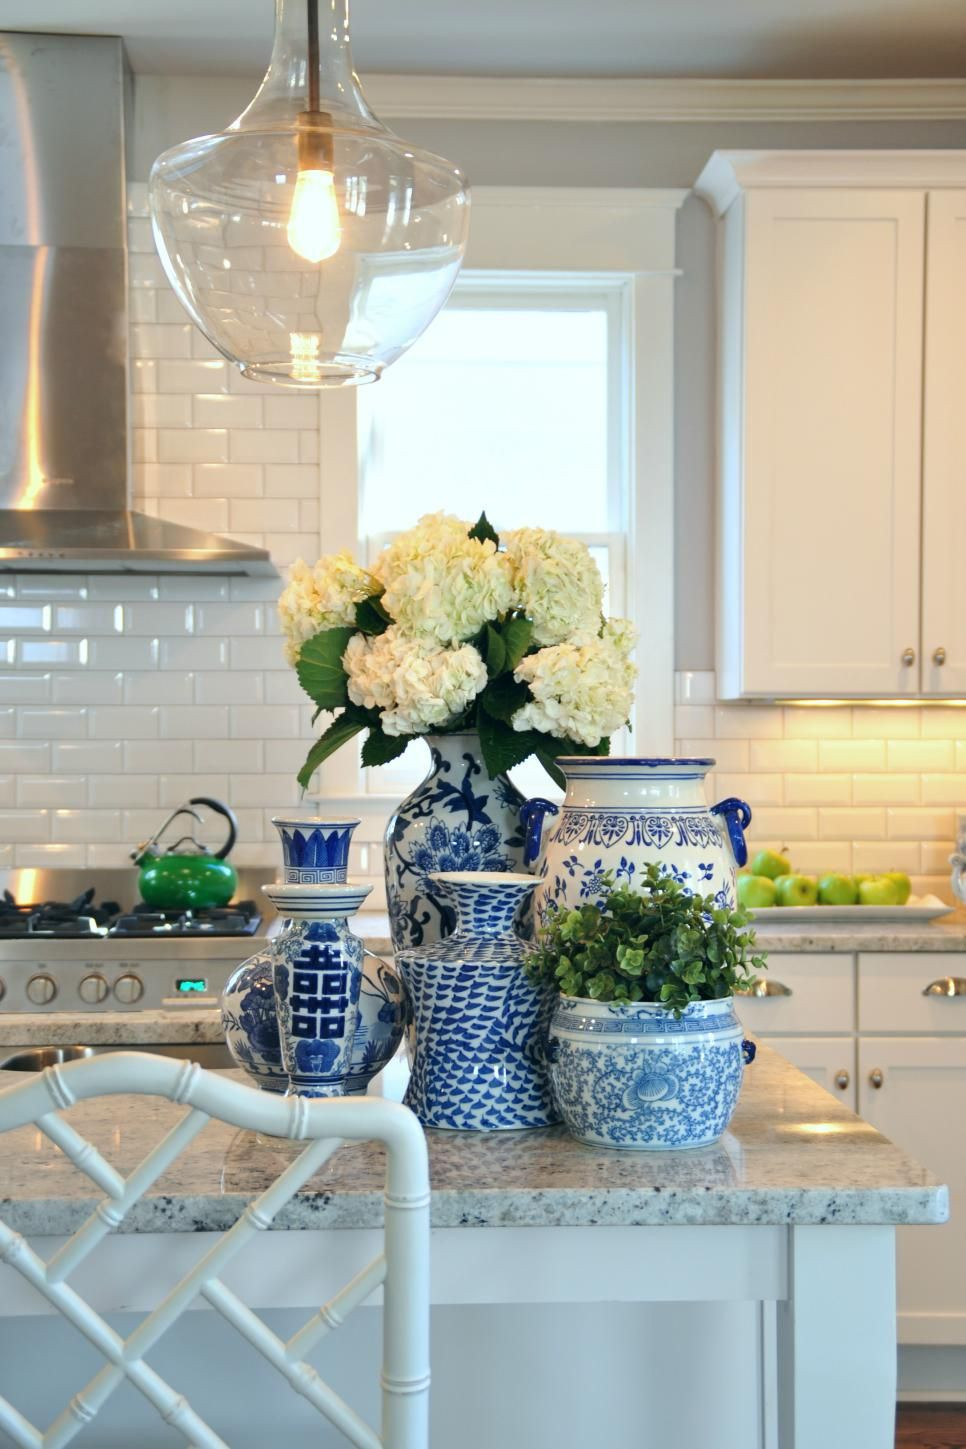 Best ideas about Blue And White Kitchen Decor . Save or Pin Ways to Save Money to Add or Update a Kitchen Island or Now.